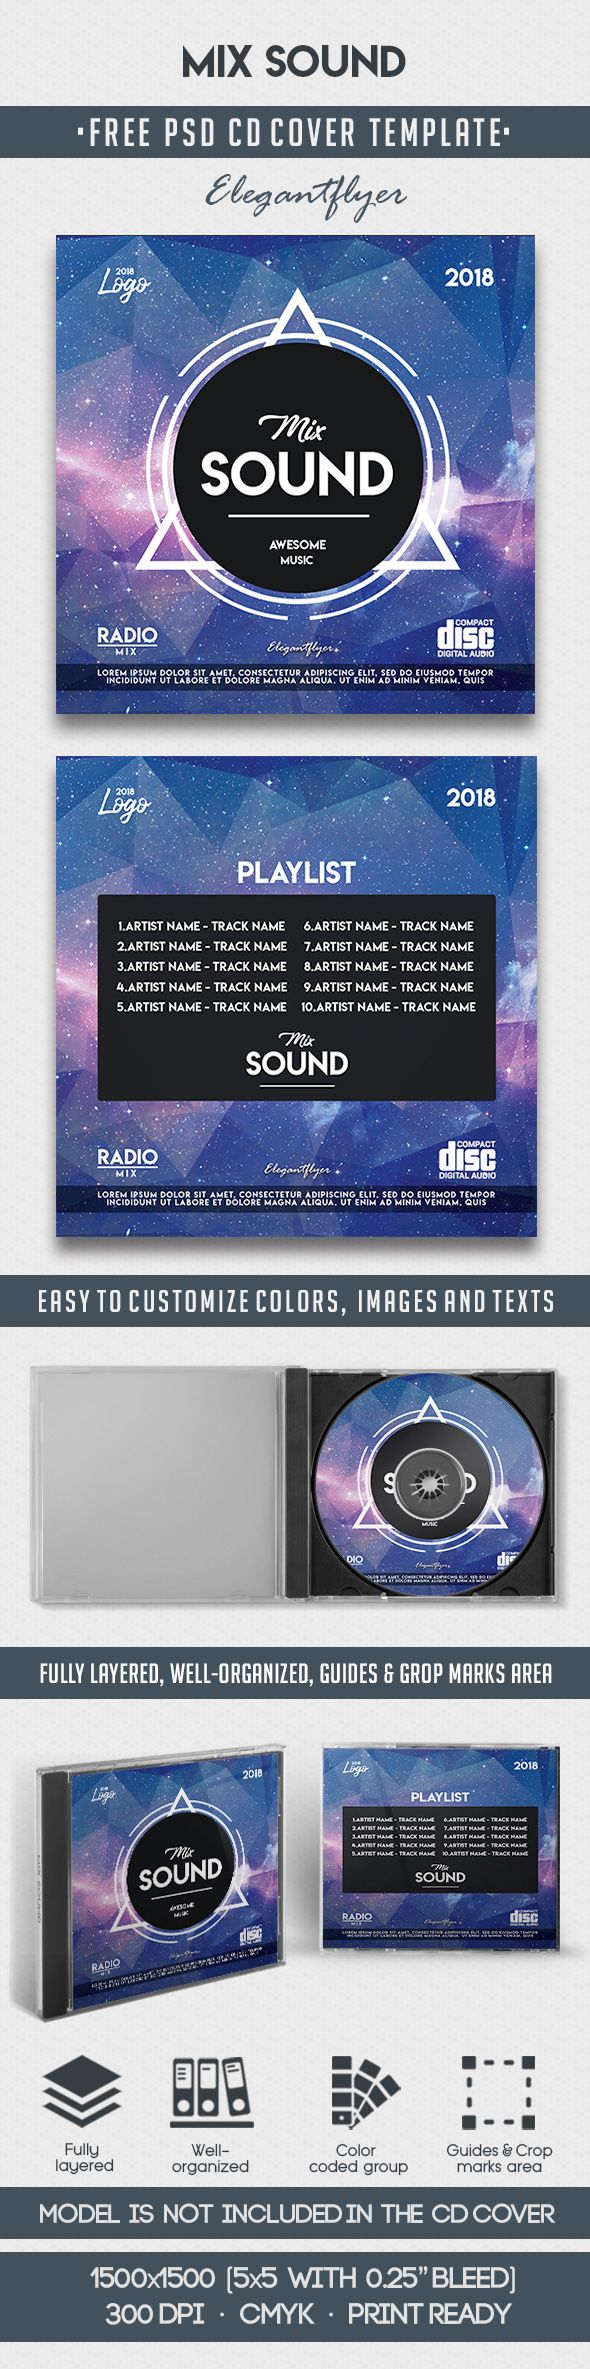 Mix Sound – Free CD Cover PSD Template